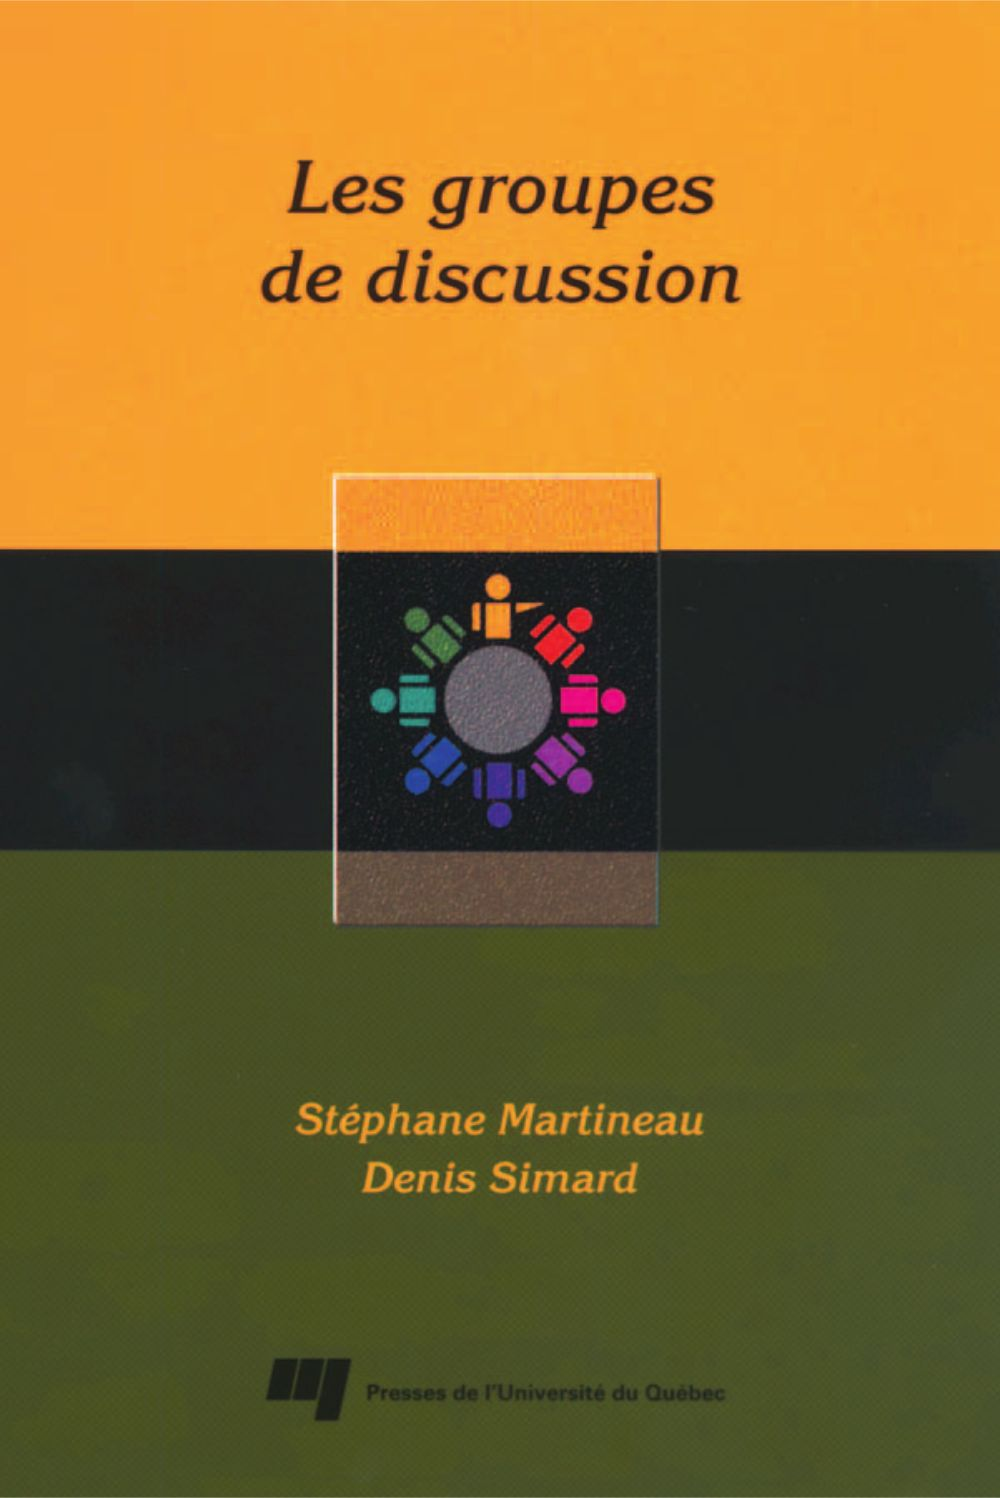 Les groupes de discussion